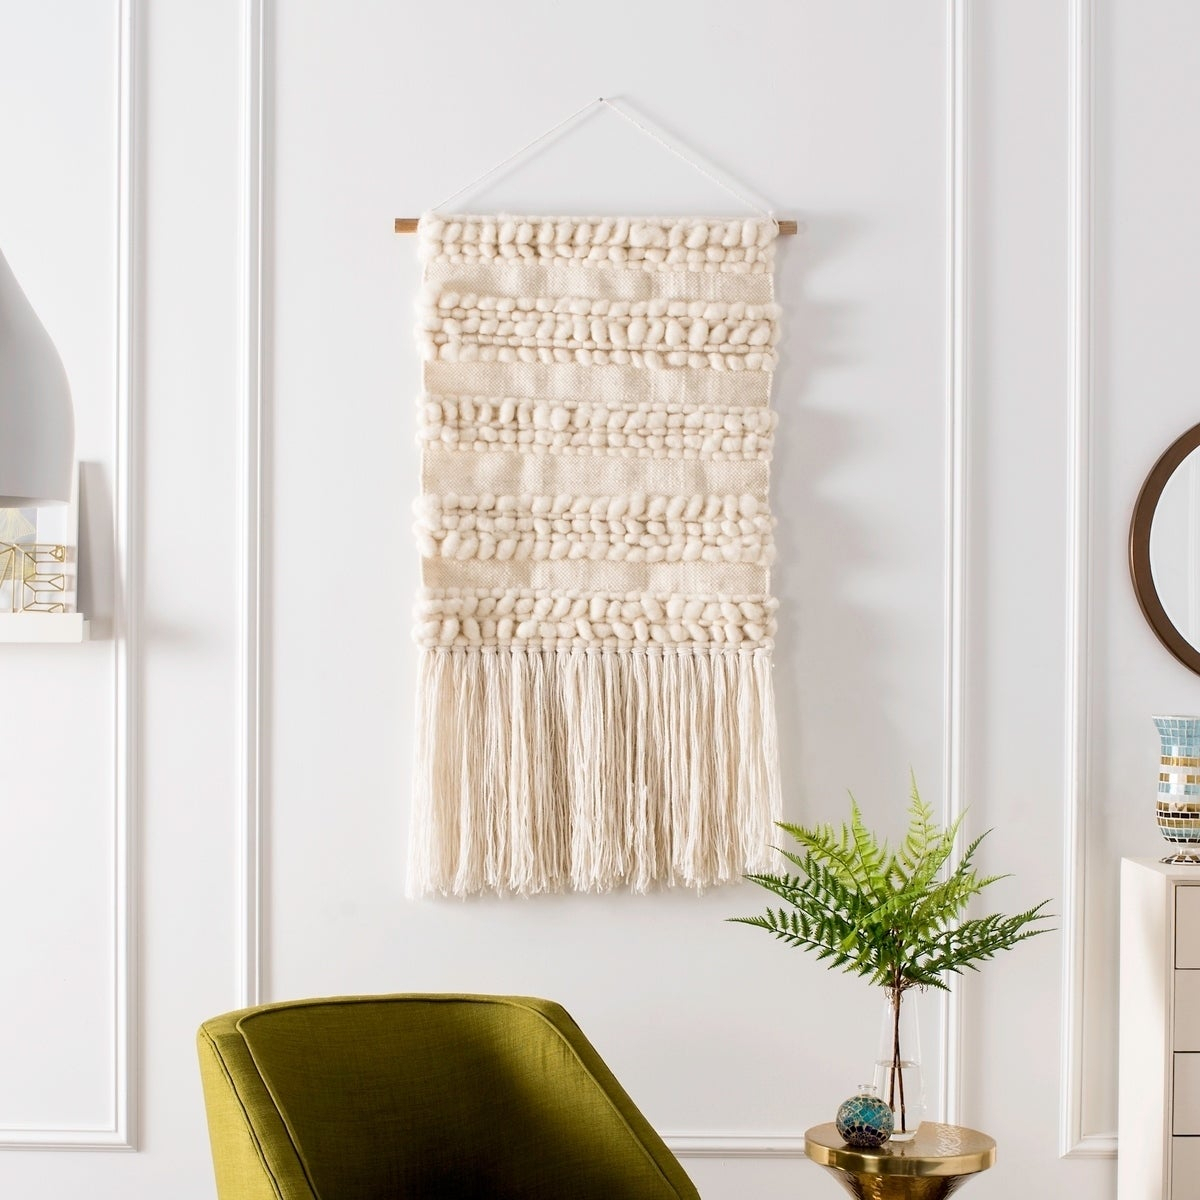 Most Current 4 Piece Handwoven Wheel Wall Decor Sets Regarding Shop Safavieh Sedona Hand Woven Wall Tapestry 101 – 2' X 2'4' – On (View 6 of 20)